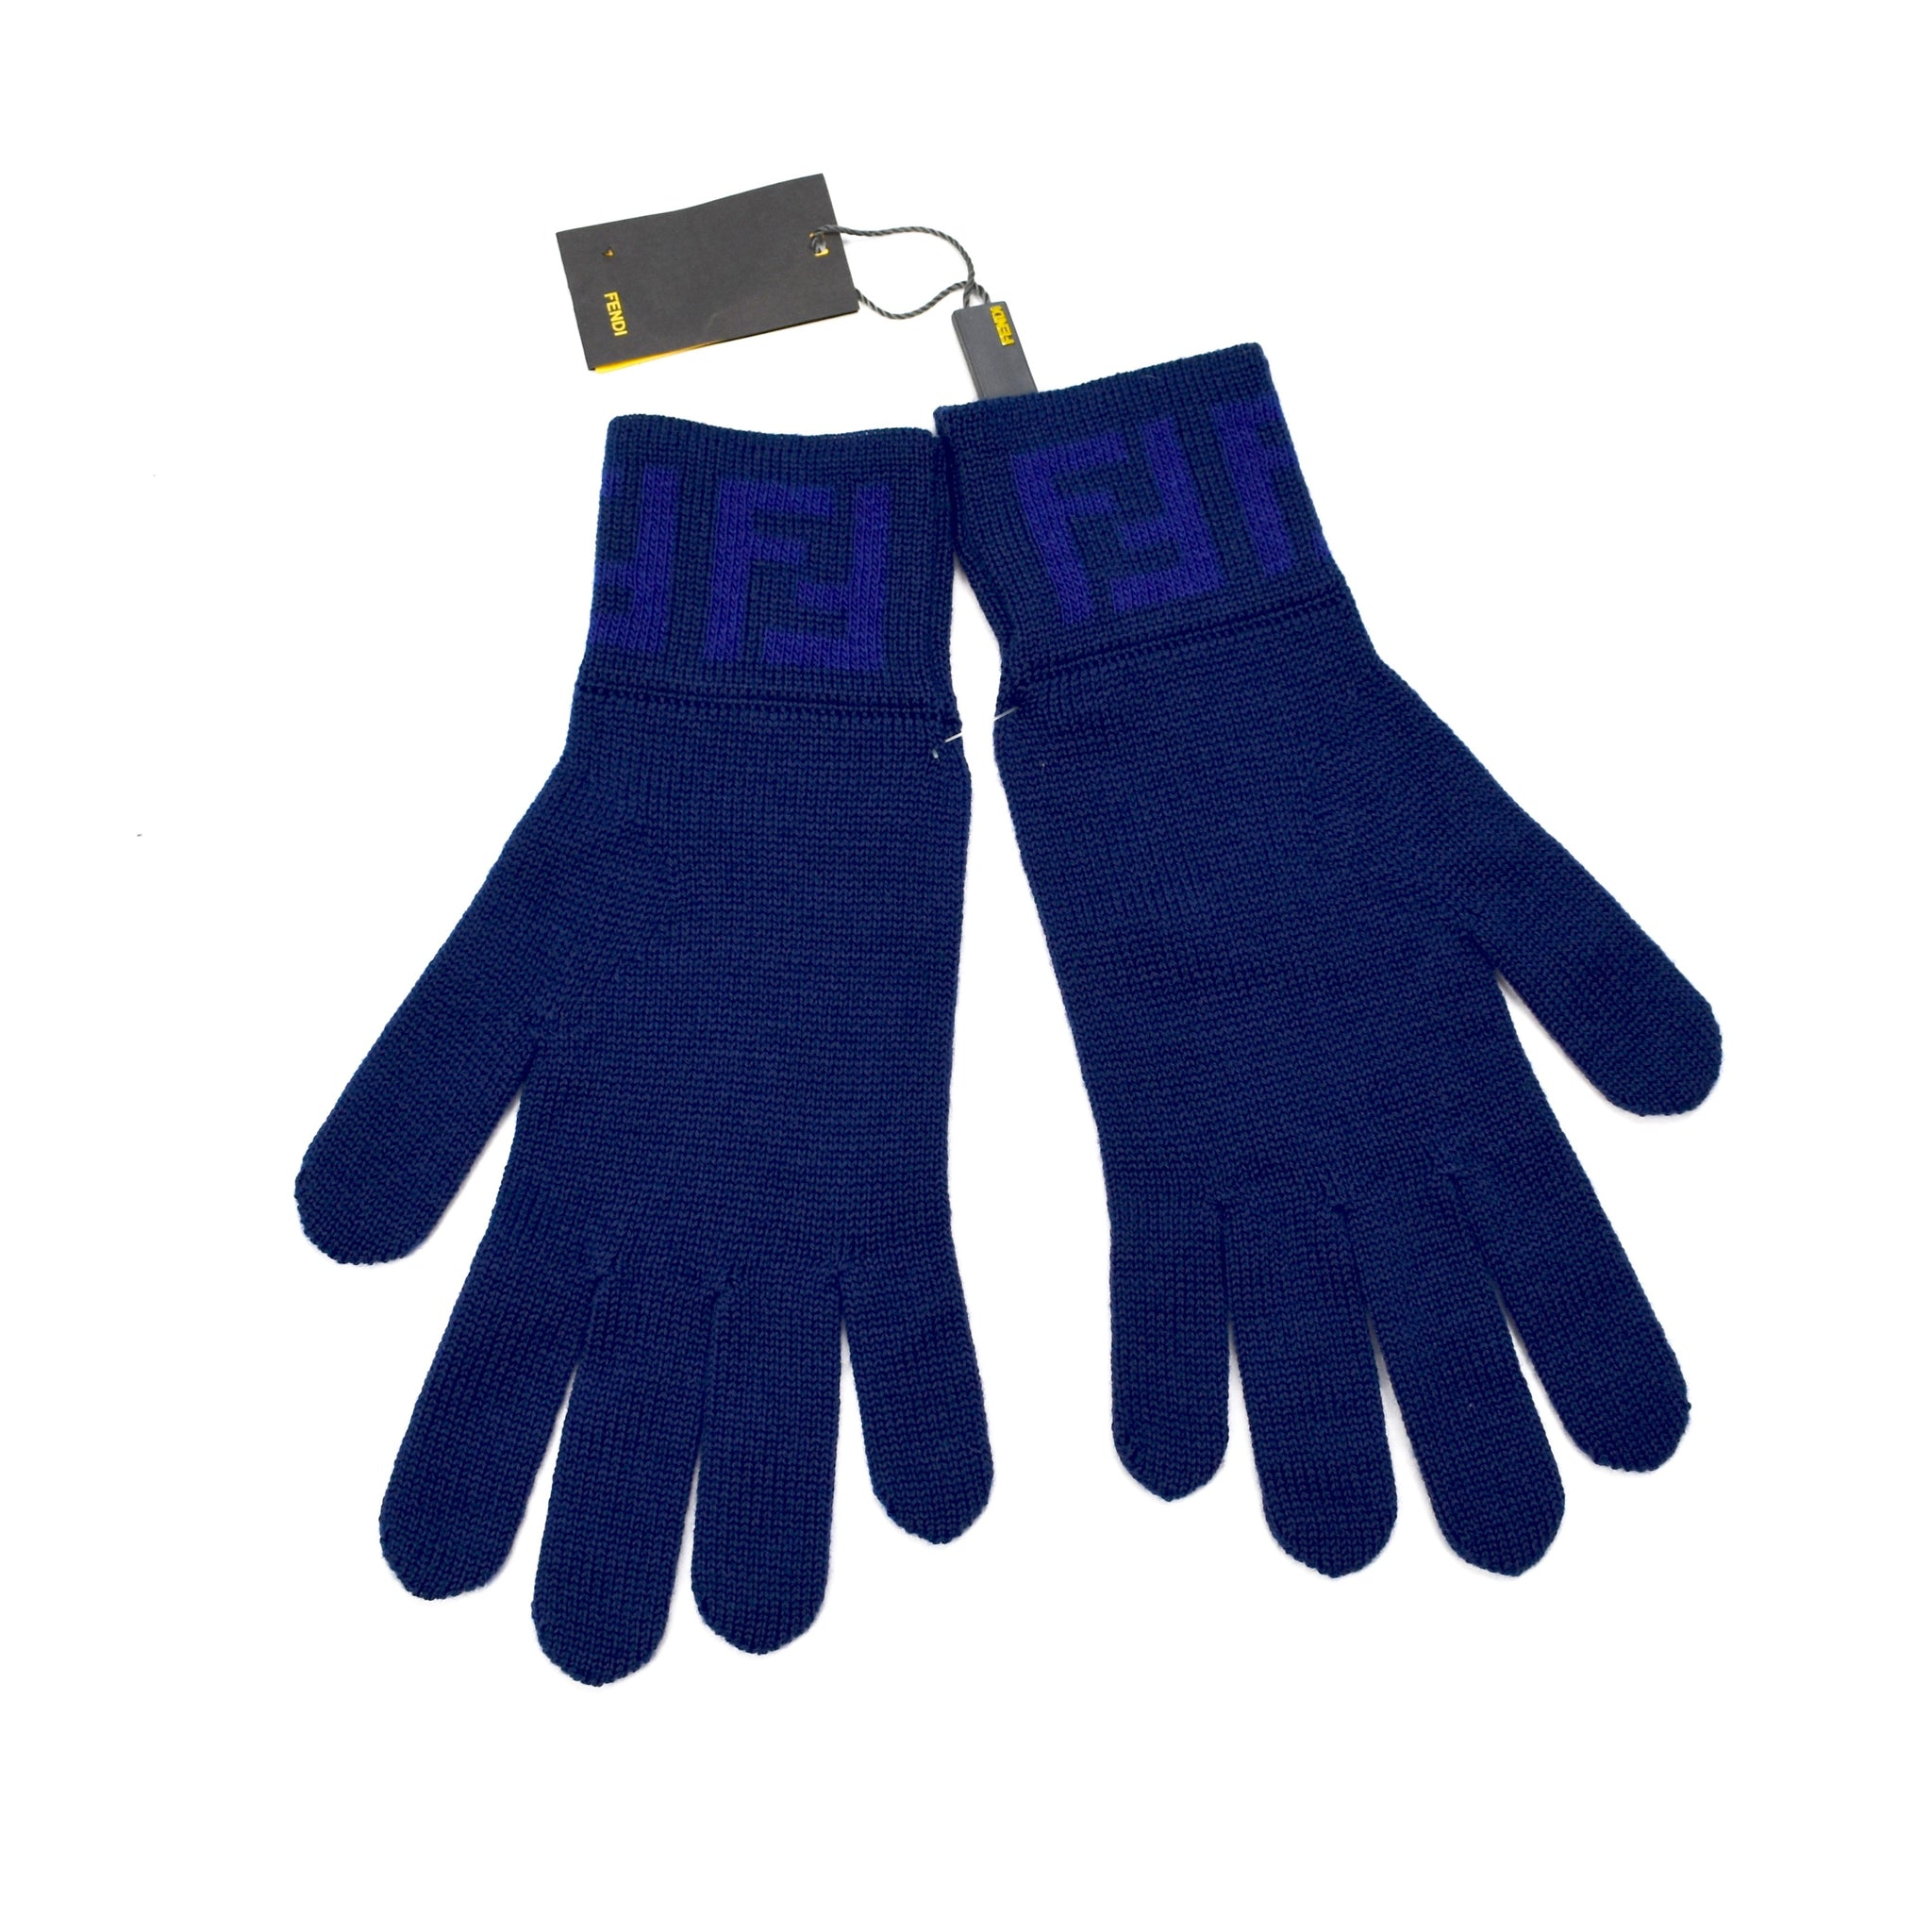 Fendi - Navy Blue Knit Gloves